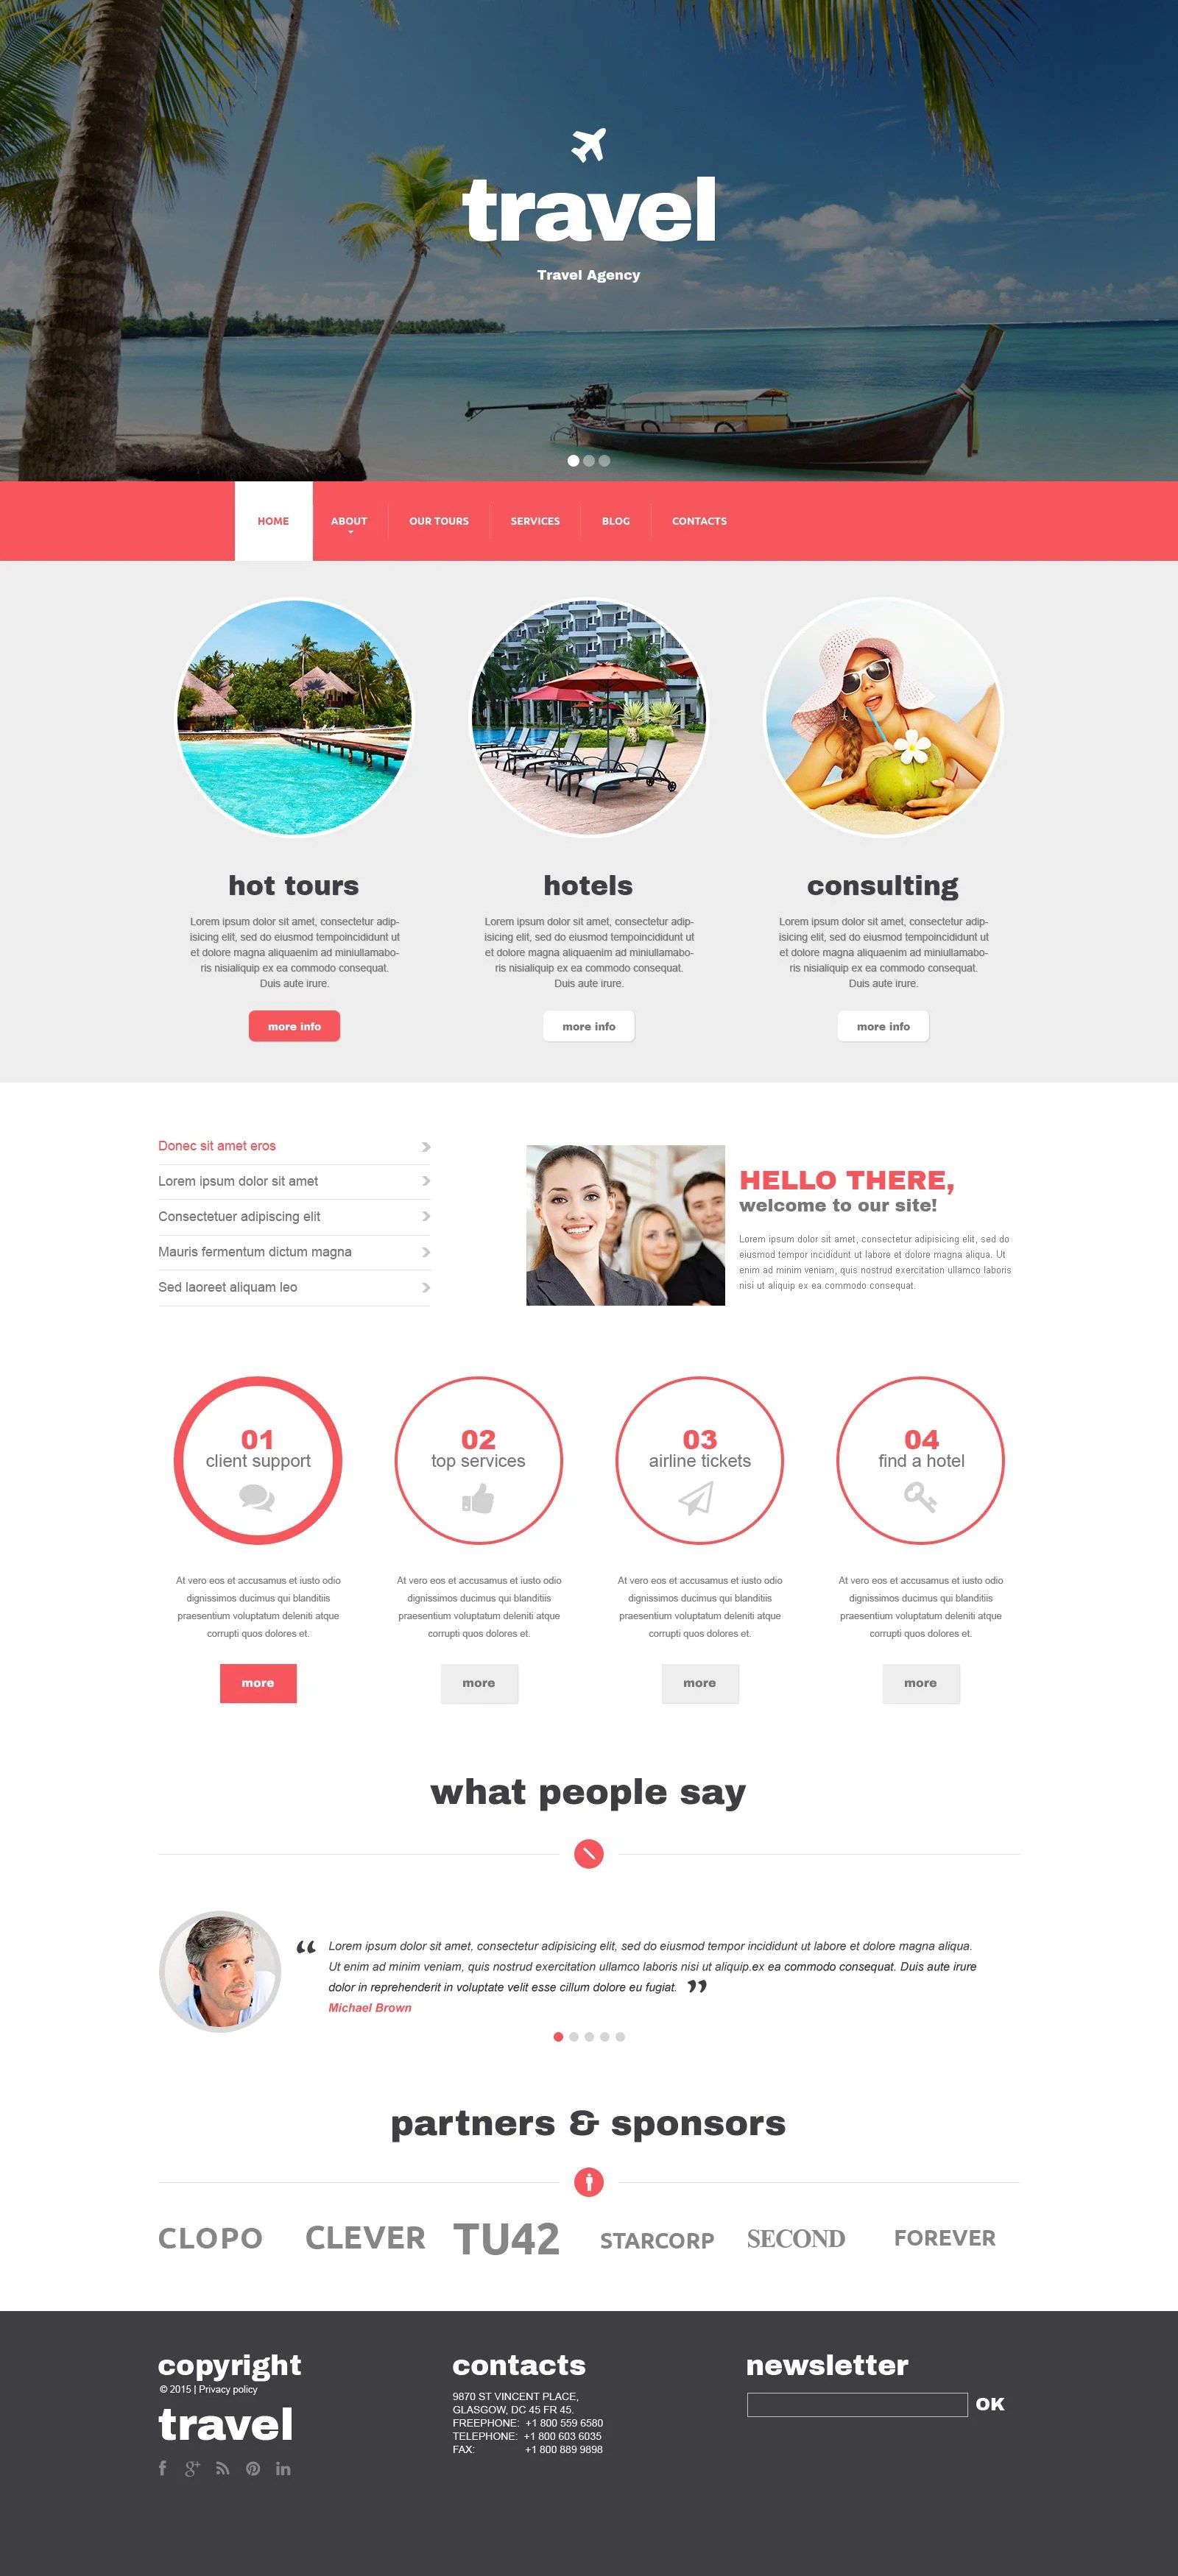 Online Travel Agent Cover Letter Drupal Template Download Premium Flash Drupal Cms Templates And